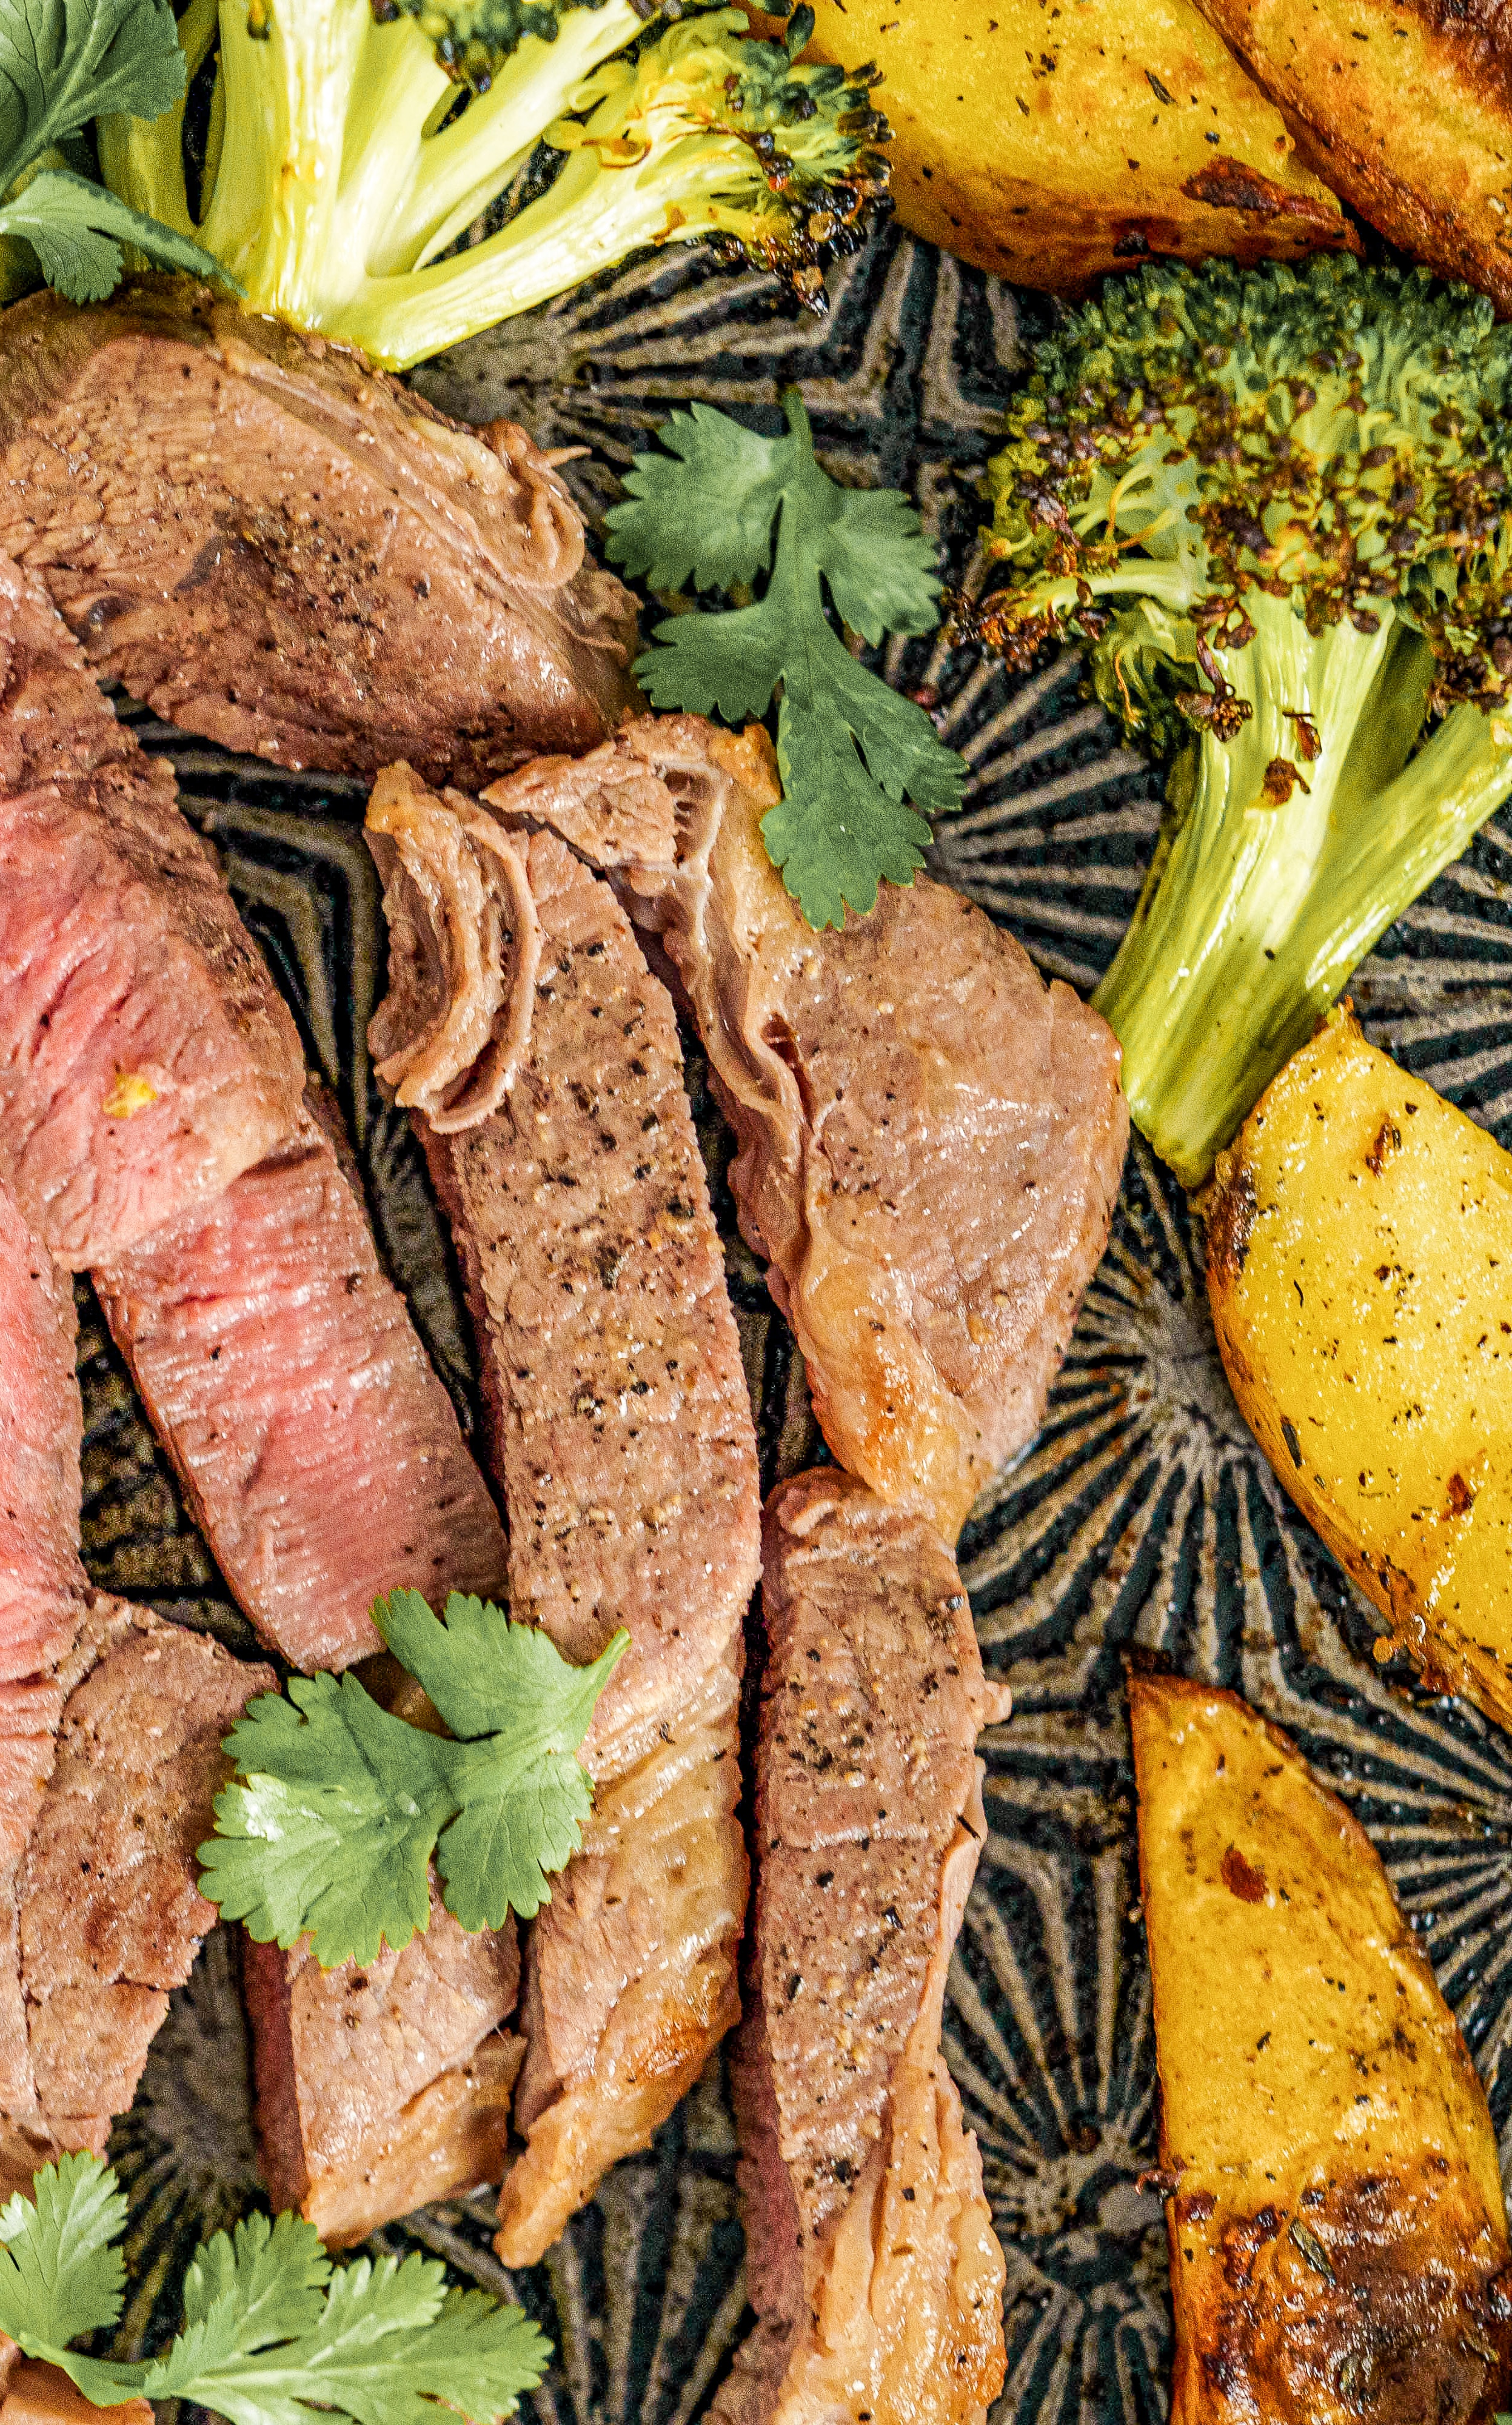 Sliced steak cooked medium garnished with parsley leaves.